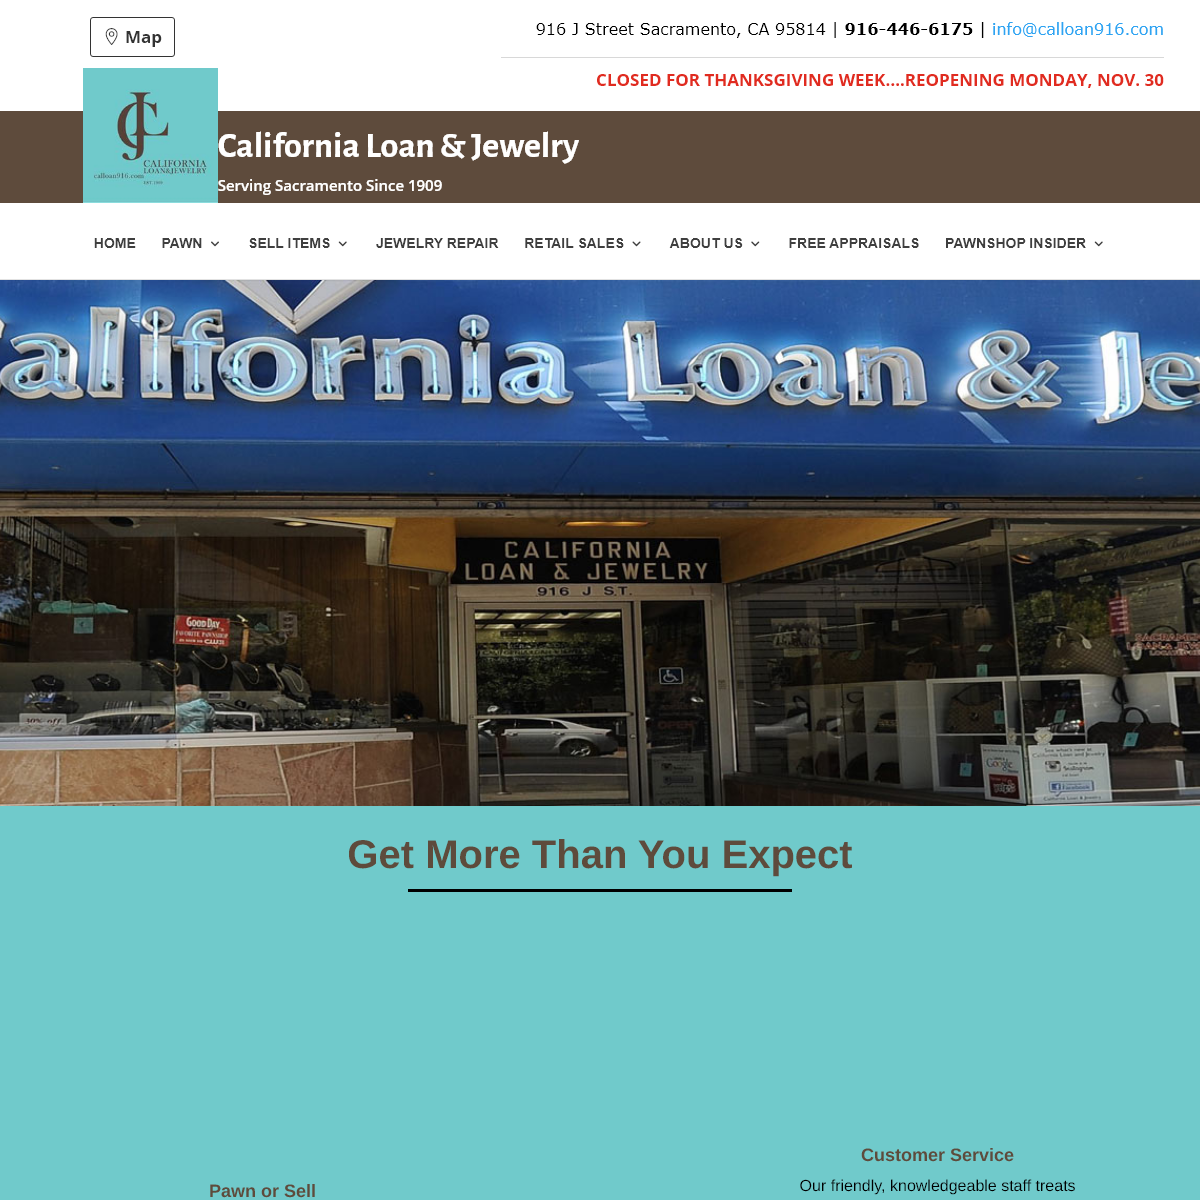 California Loan & Jewelry Inc. - Home - Get More Than You Expect!